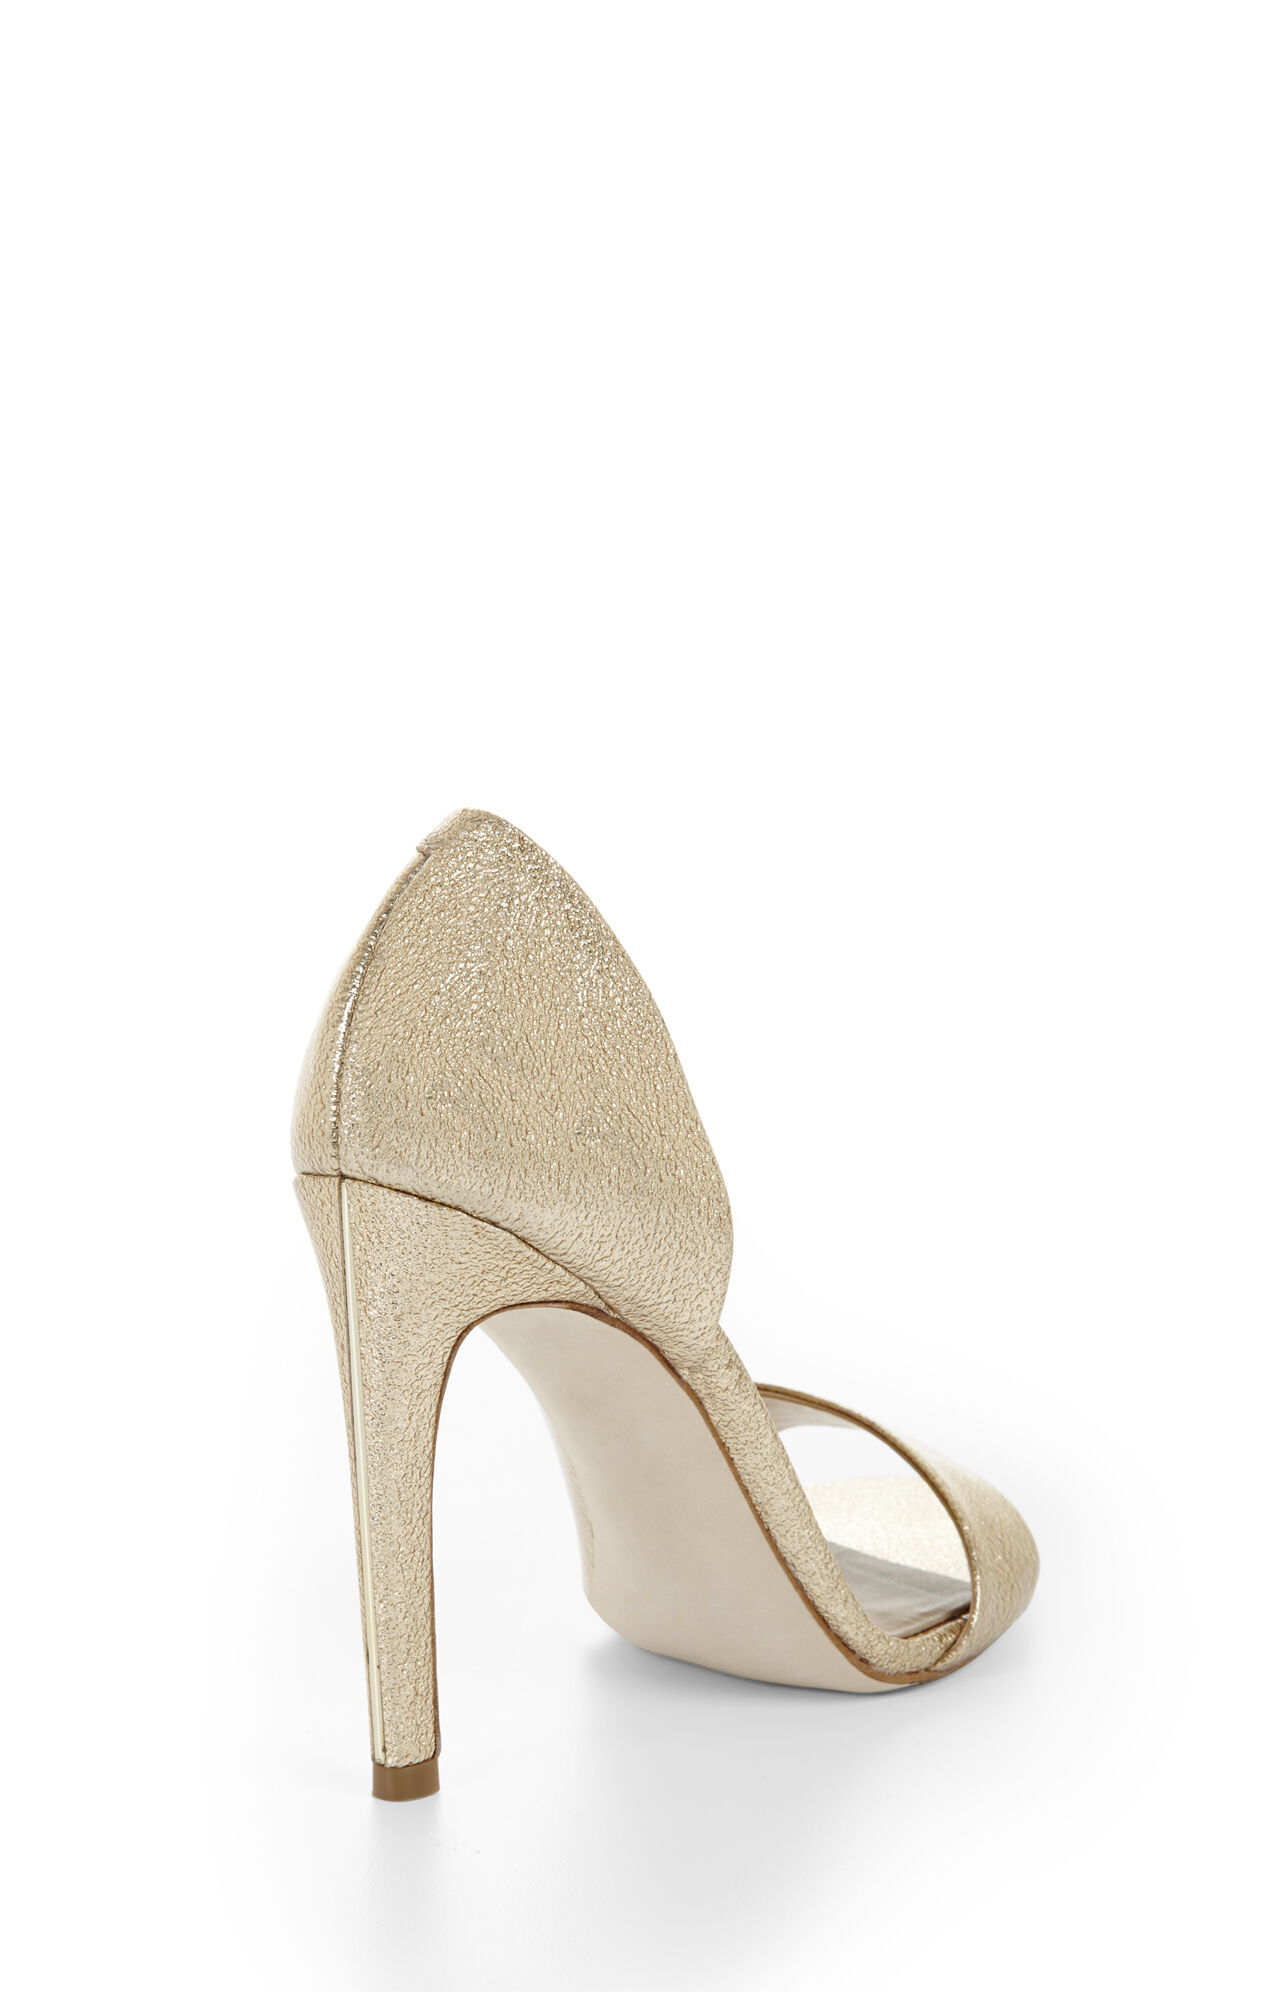 Jive High-Heel Peep-Toe Sandal